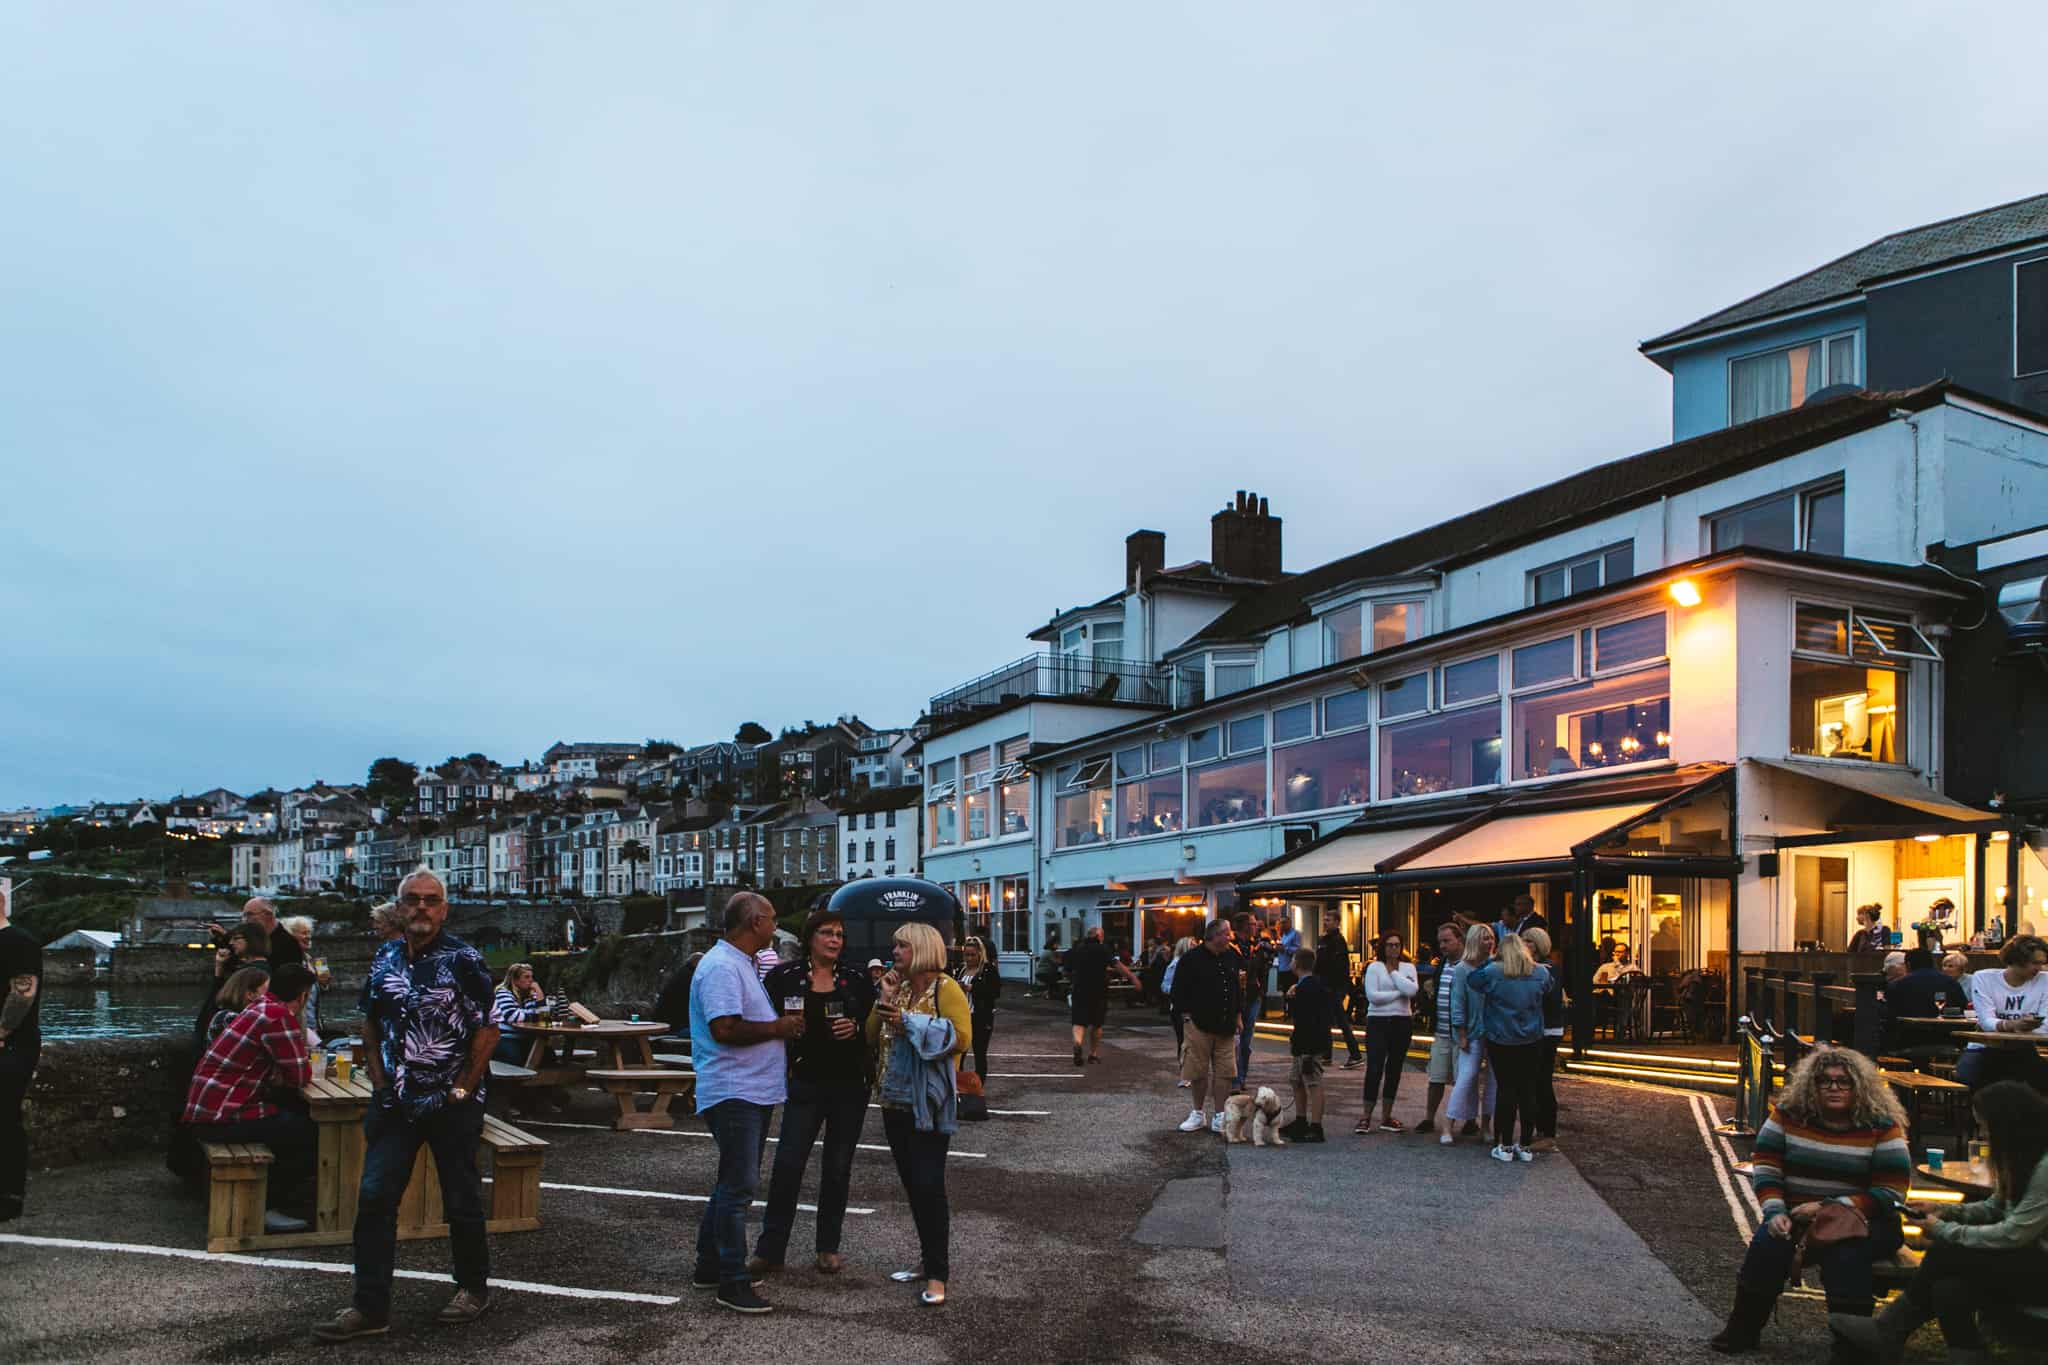 falmouth-week-at-the-working-boat-pub-live-music-events-falmouth-cornwall (46 of 114)